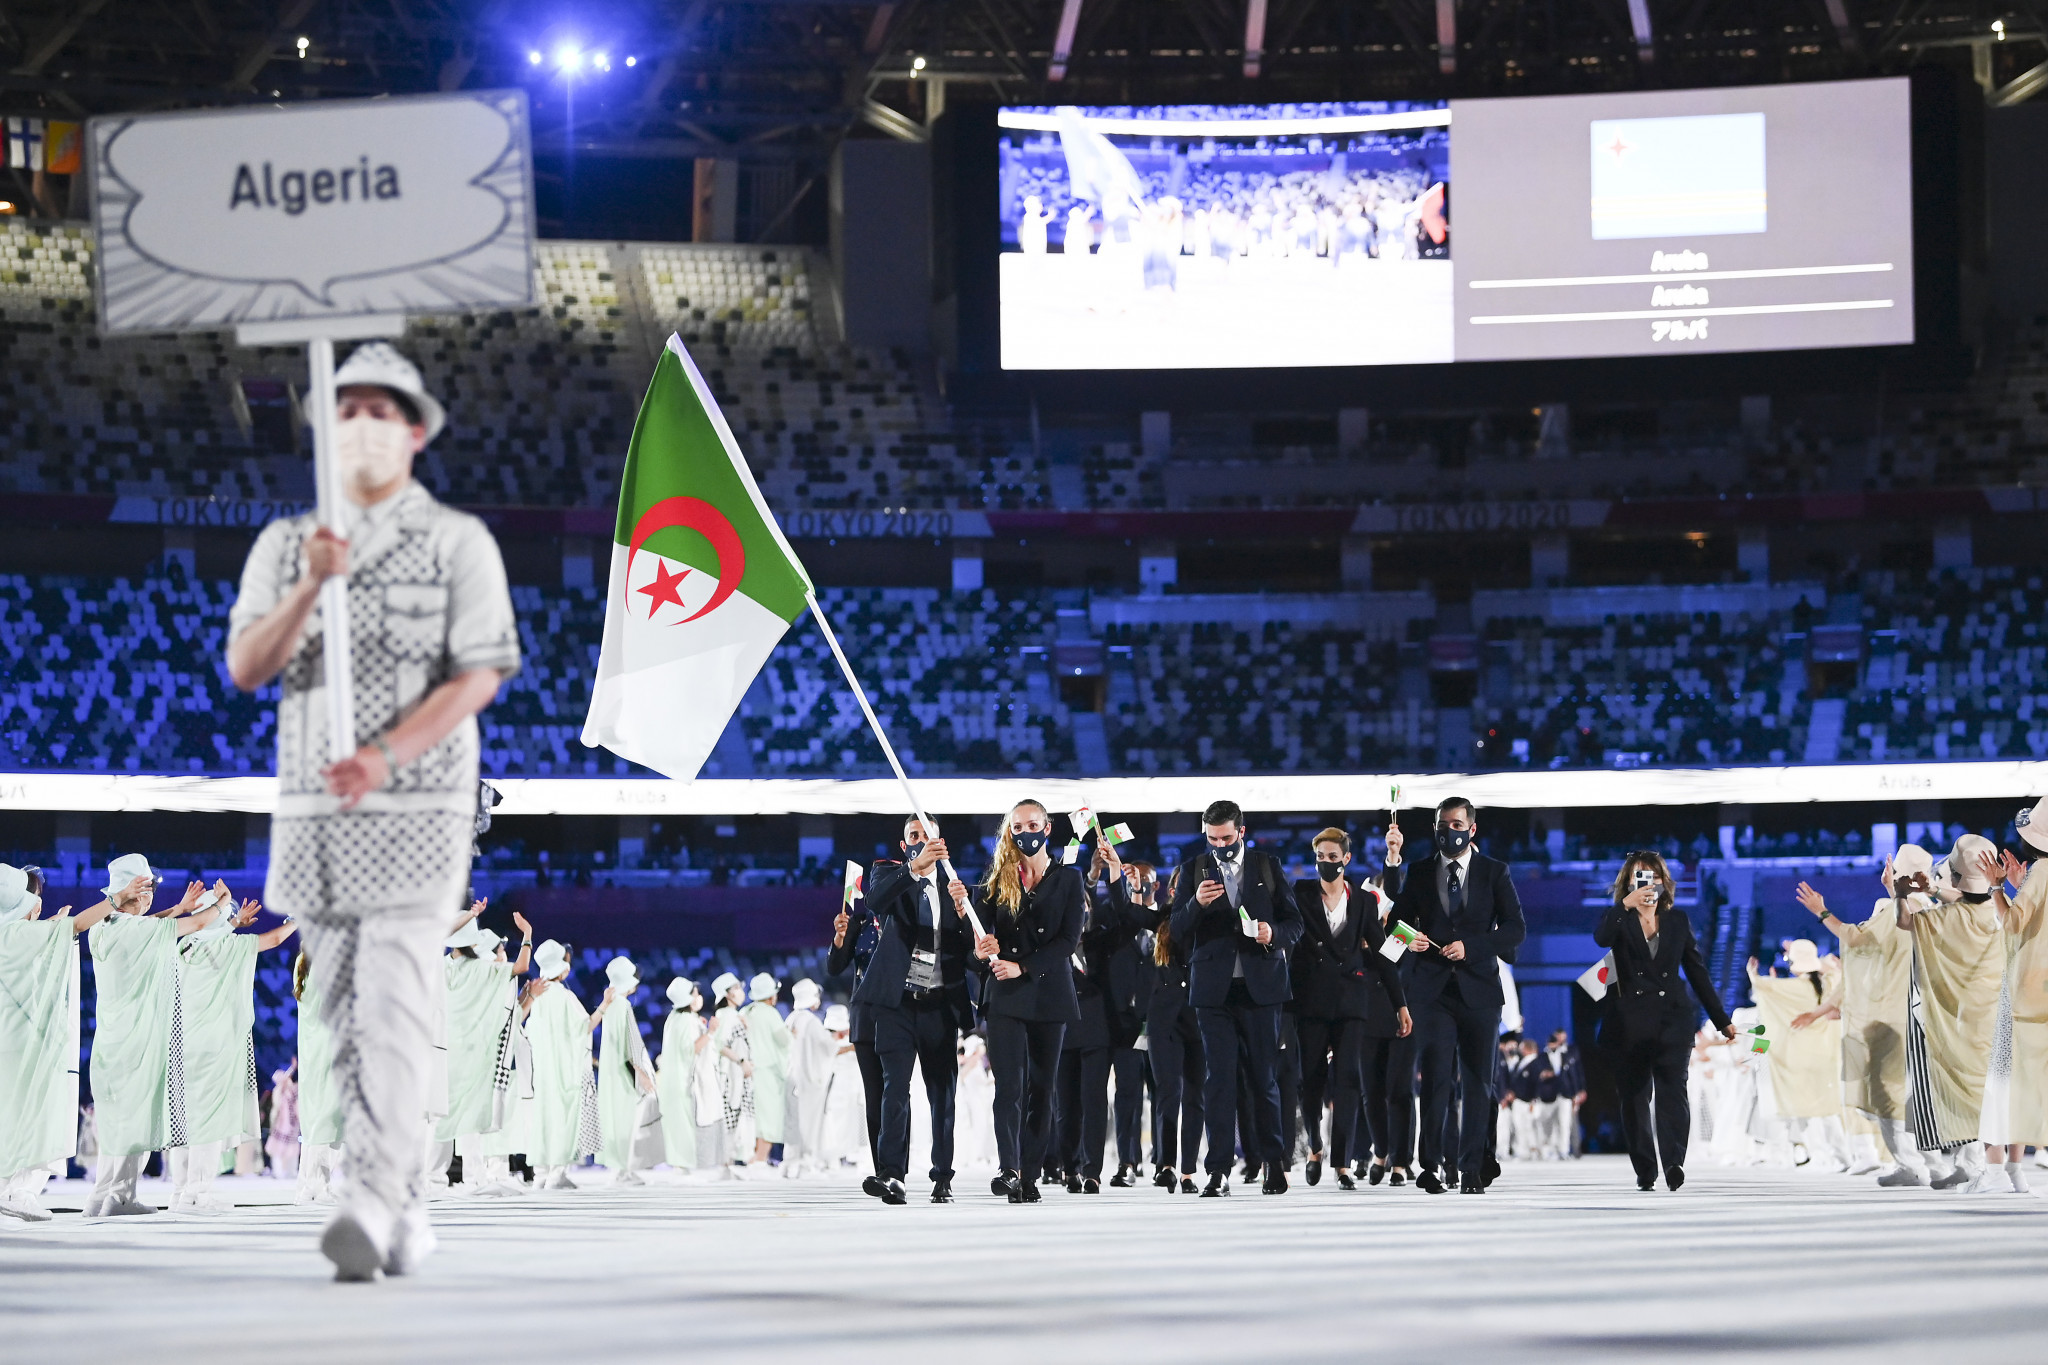 Algeria won no medals at a Summer Olympic Games for the first time since Athens 2004  ©Getty Images